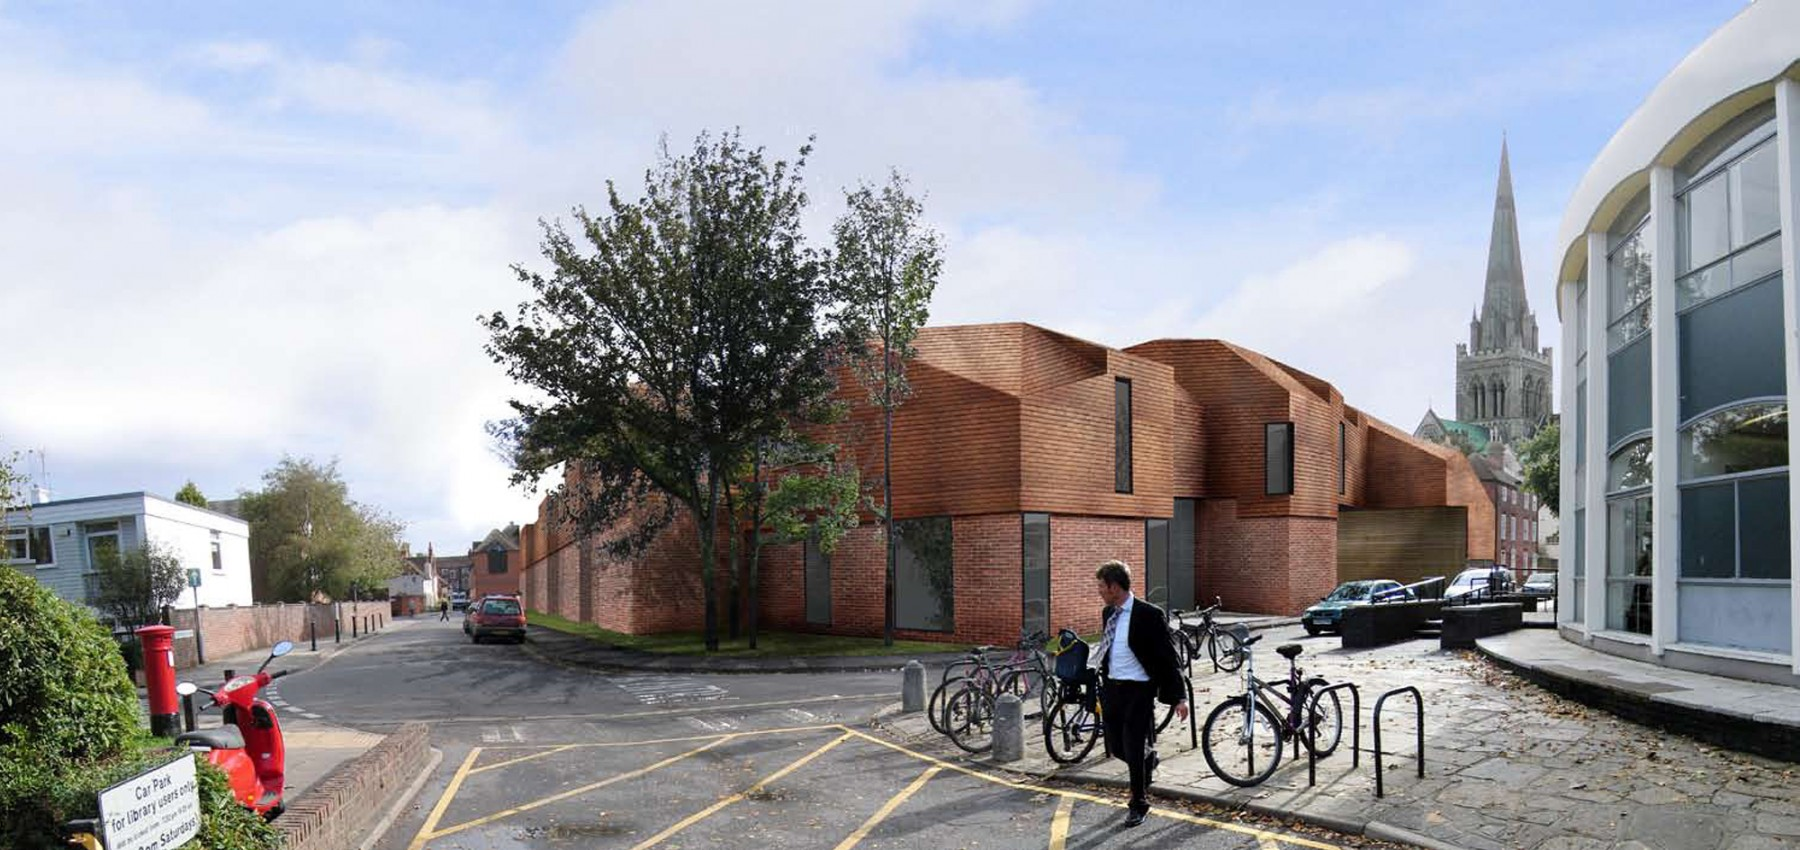 Chichester-district-museum-west-sussex-Roman-baths-competition-RIBA-Short-list-Jamie-Fobert-architects-1